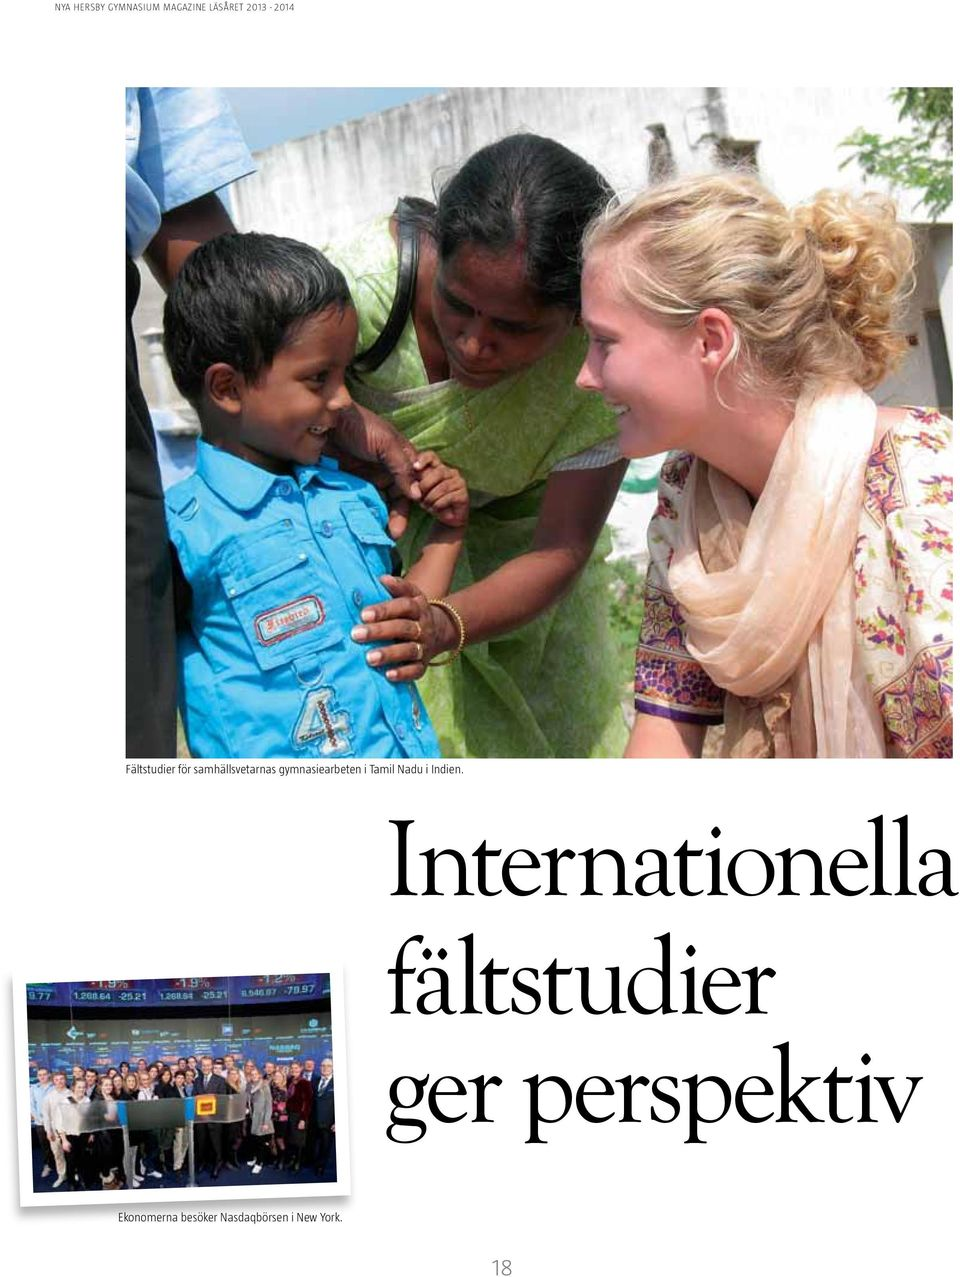 Internationella fältstudier ger